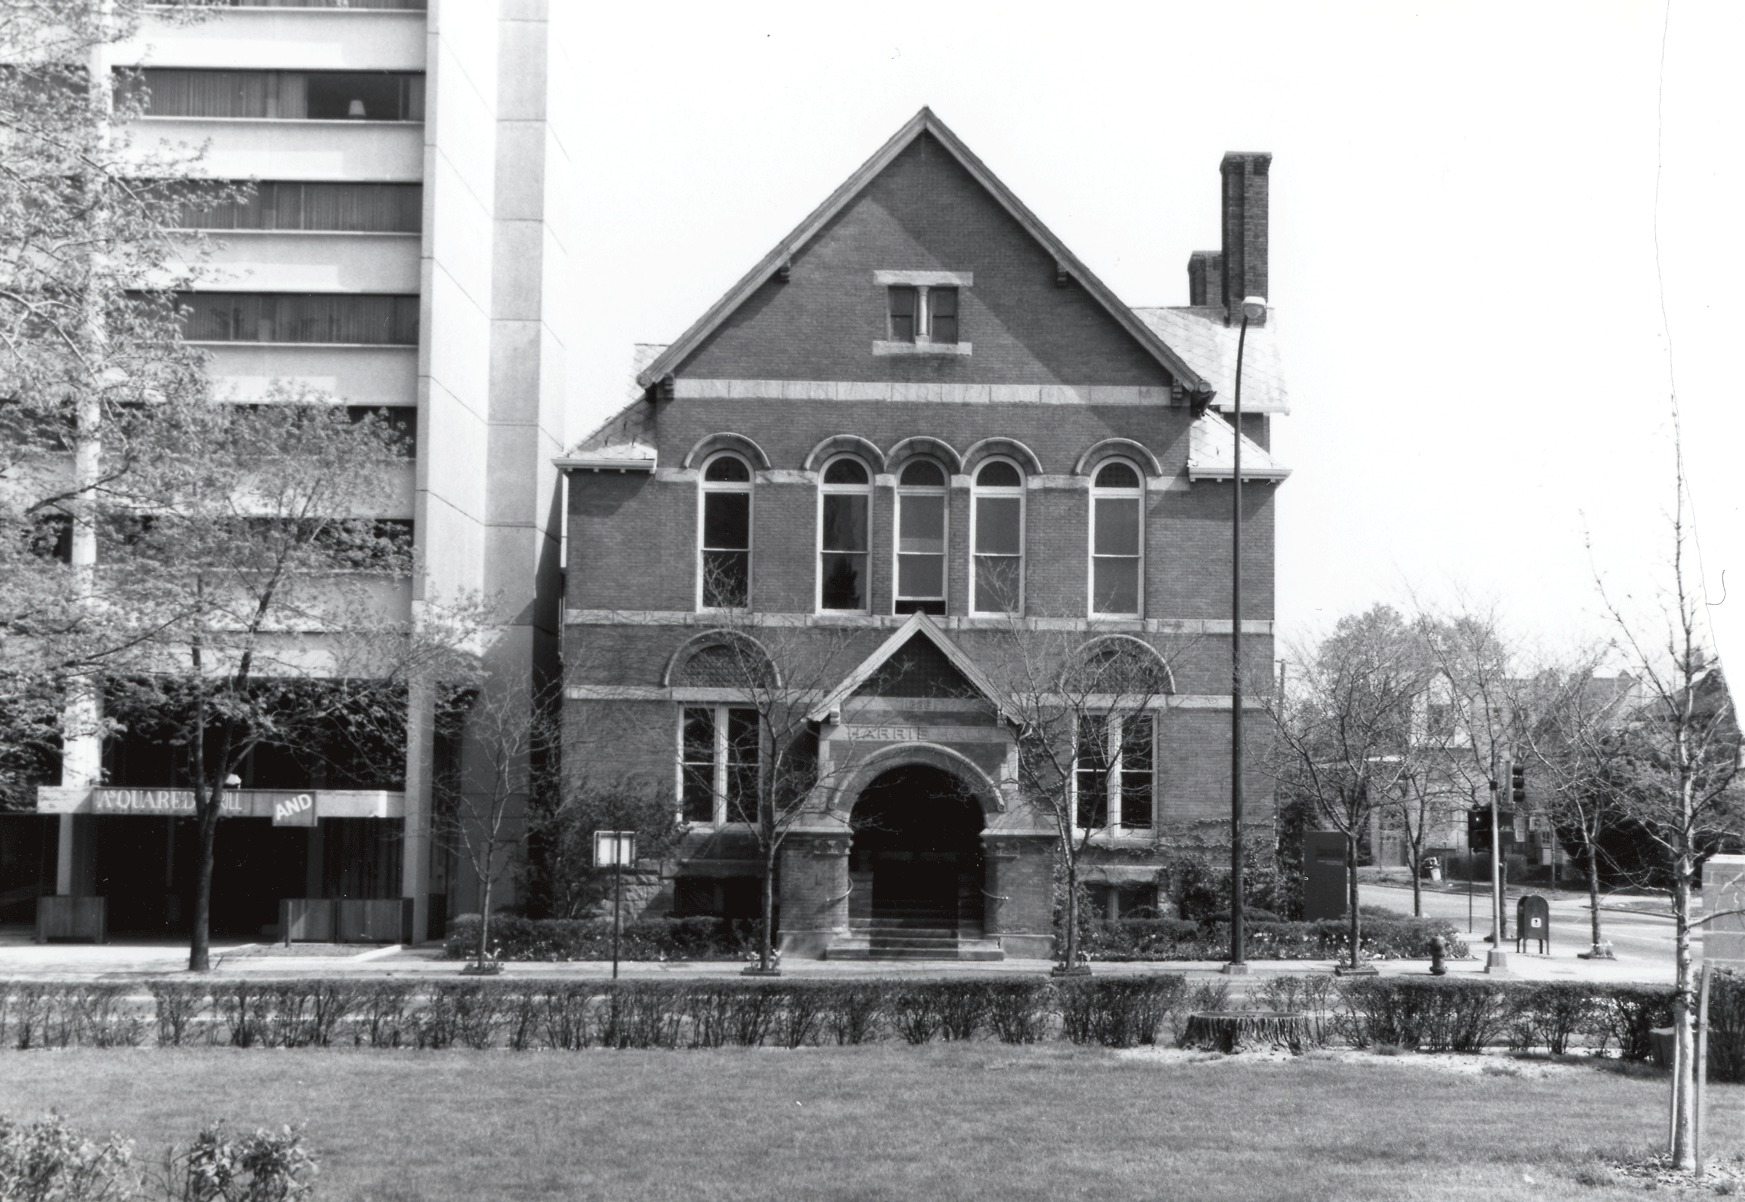 Harris Hall, 1886 image